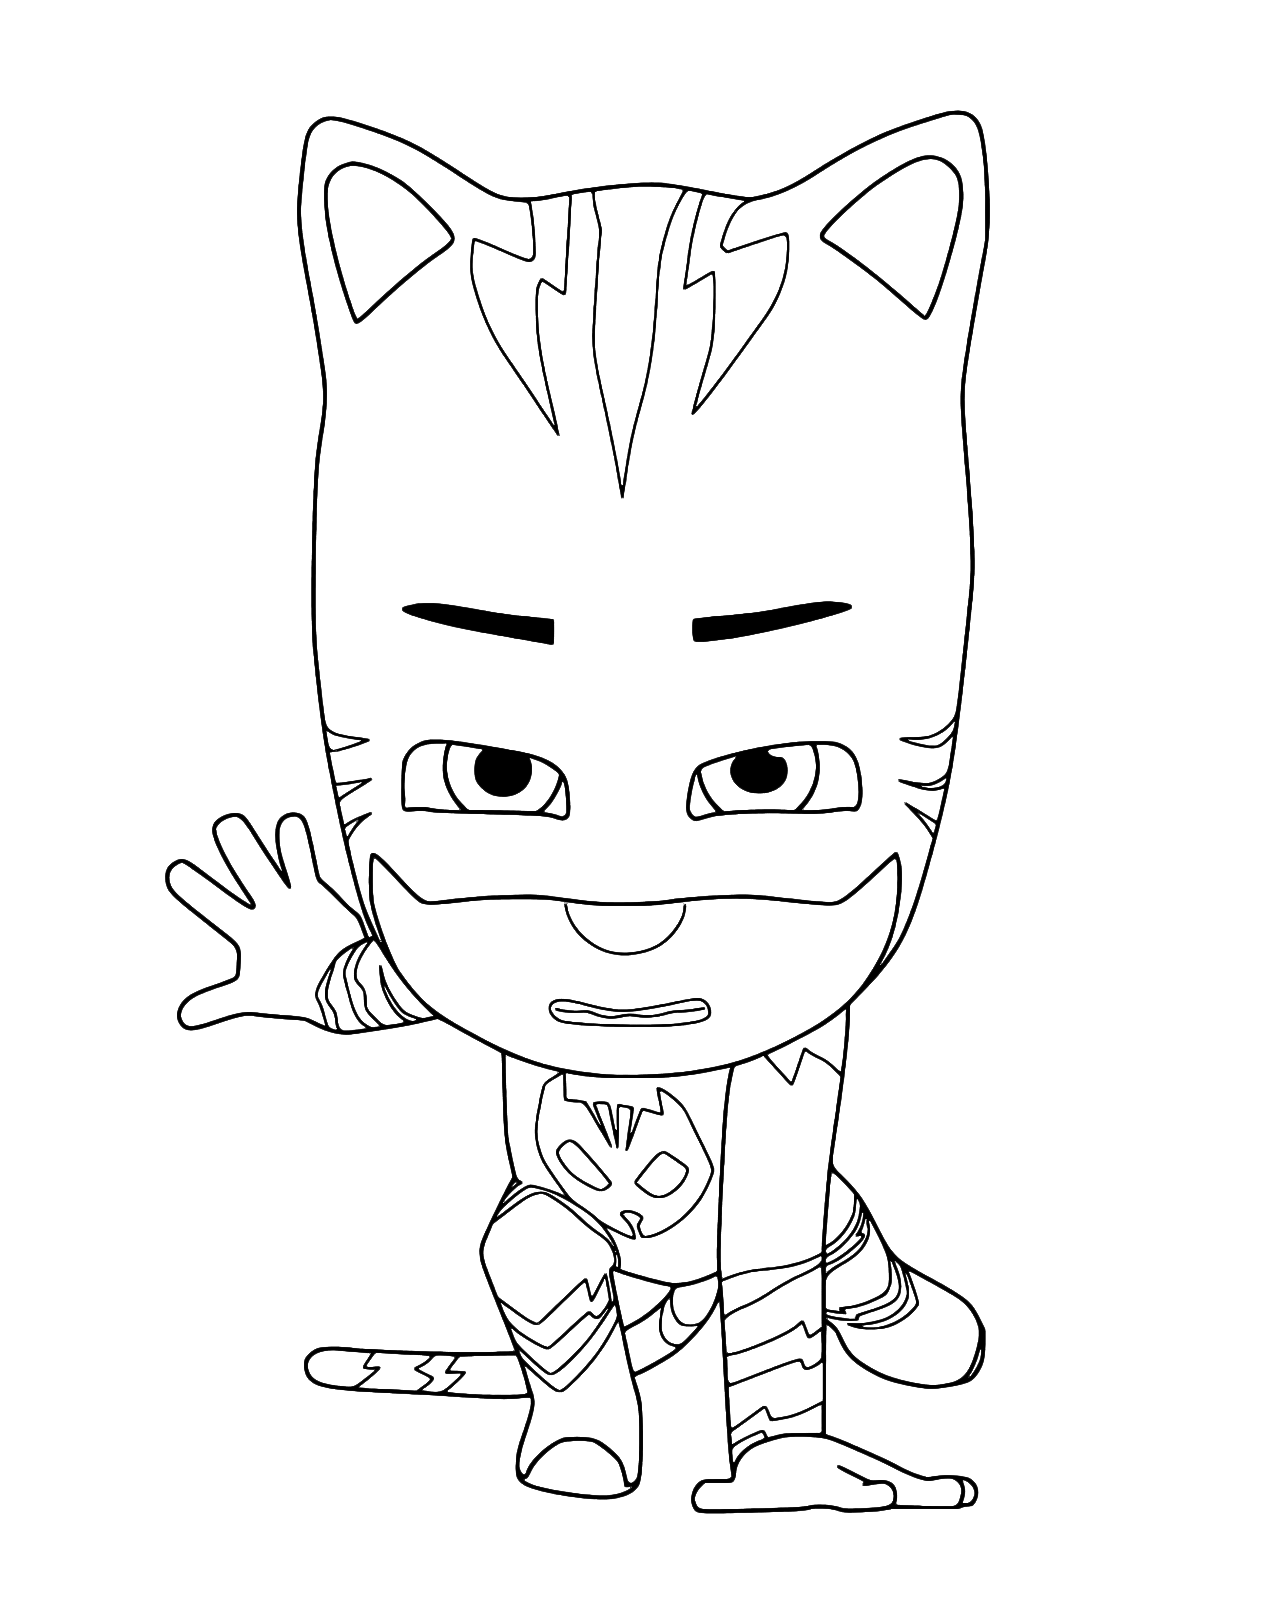 PJ Masks - Connor disguised as Catboy